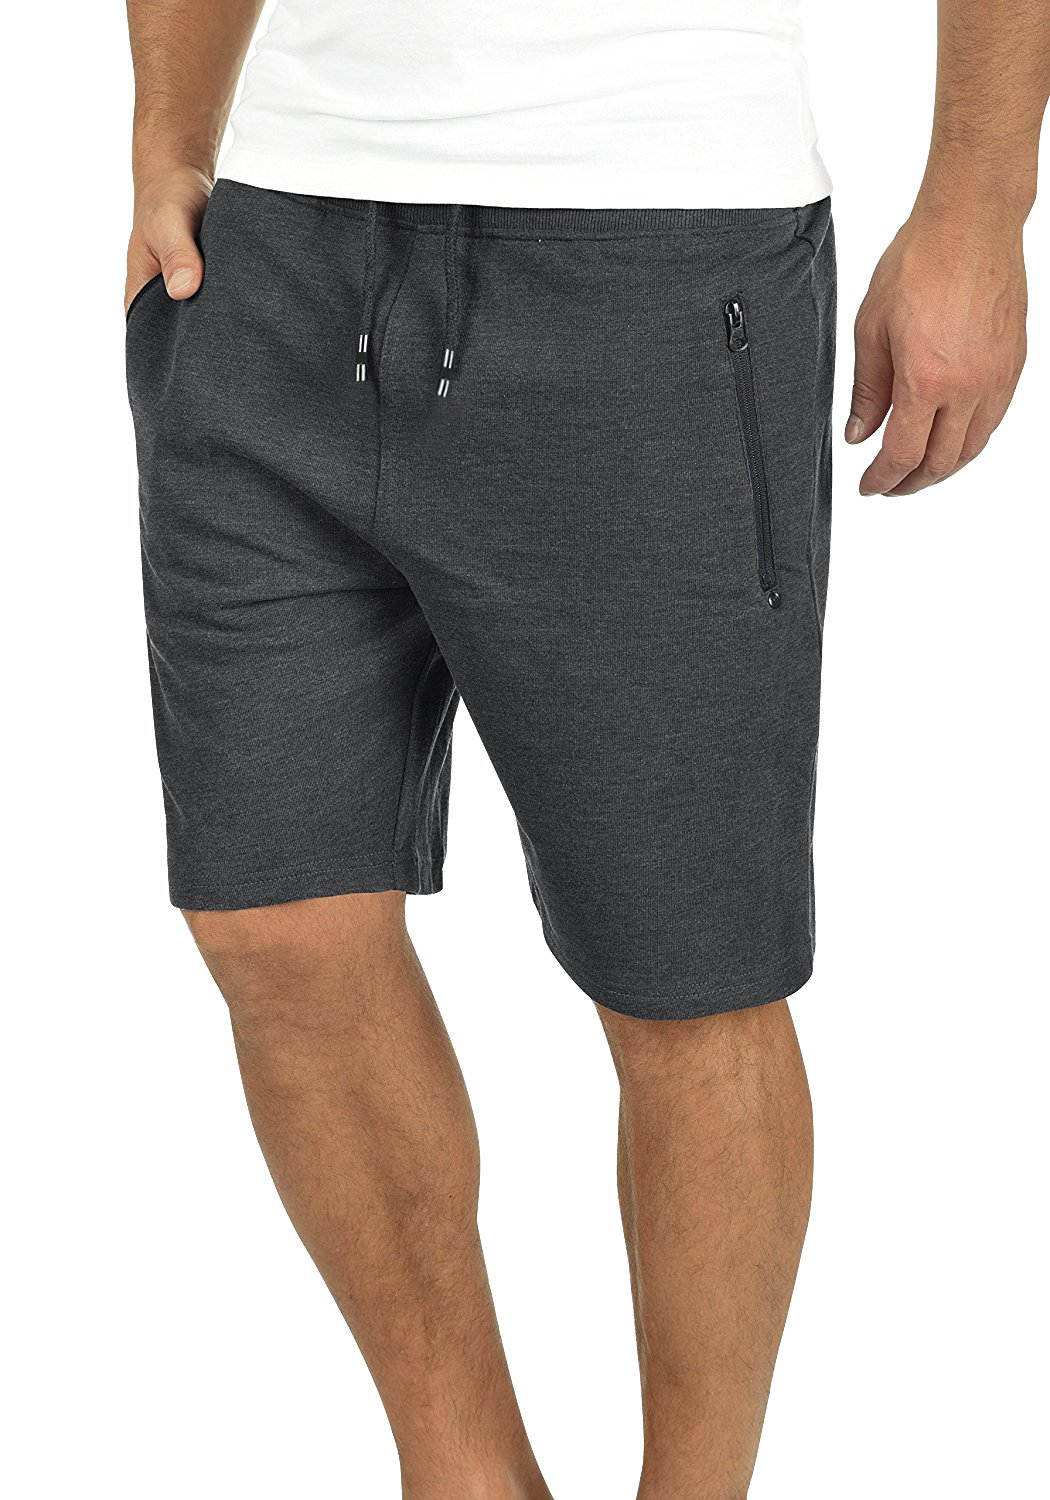 Yidarton Men's Sports Shorts Casual Fit Elastic Jogger Gym Short with Pockets(DGA,m)